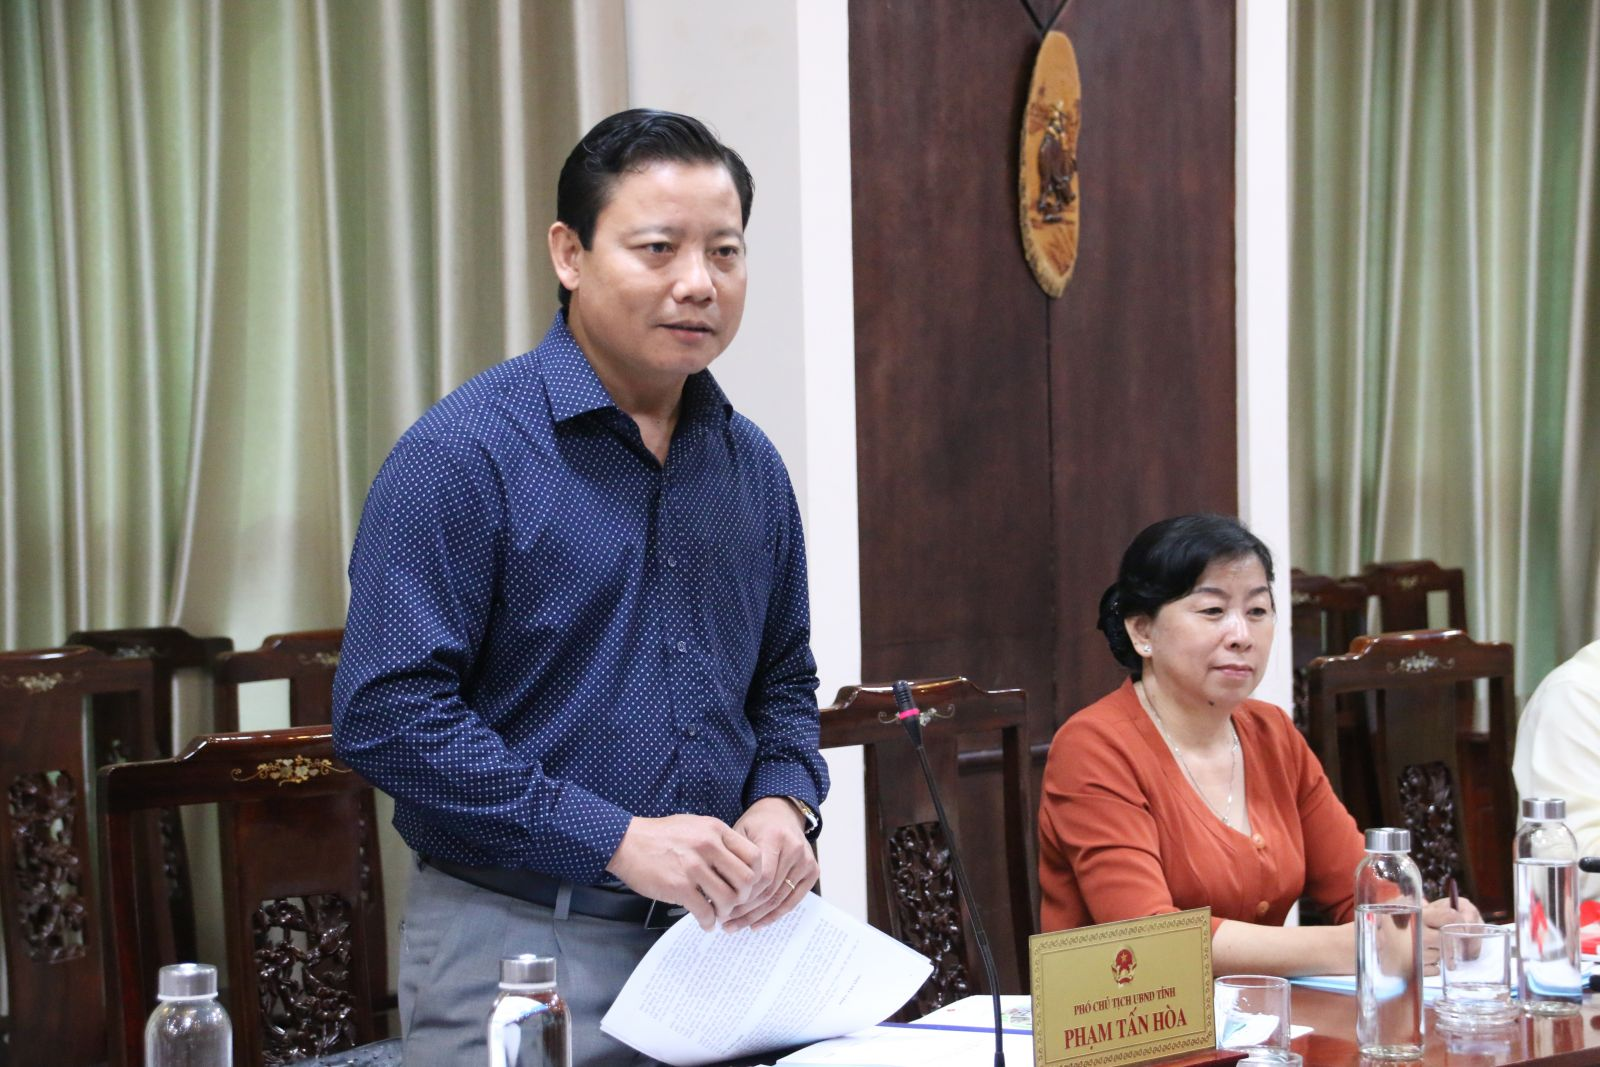 Vice Chairman of the Provincial People's Committee - Pham Tan Hoa attends and directs at the signing ceremony